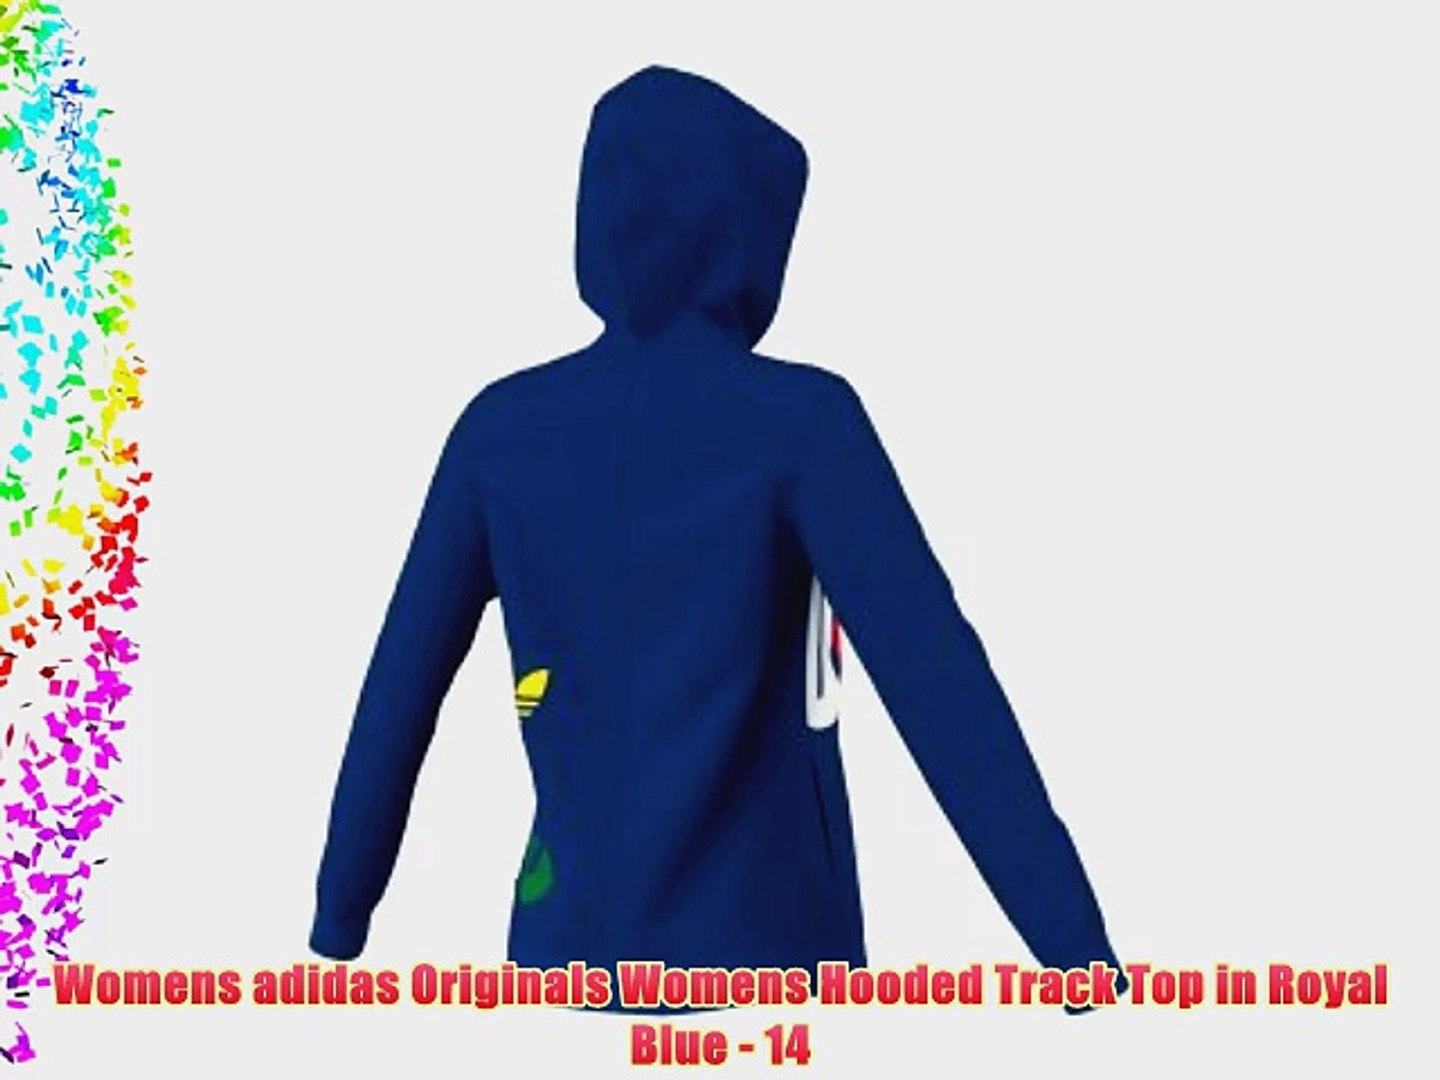 Womens adidas Originals Womens Hooded Track Top in Royal Blue 14